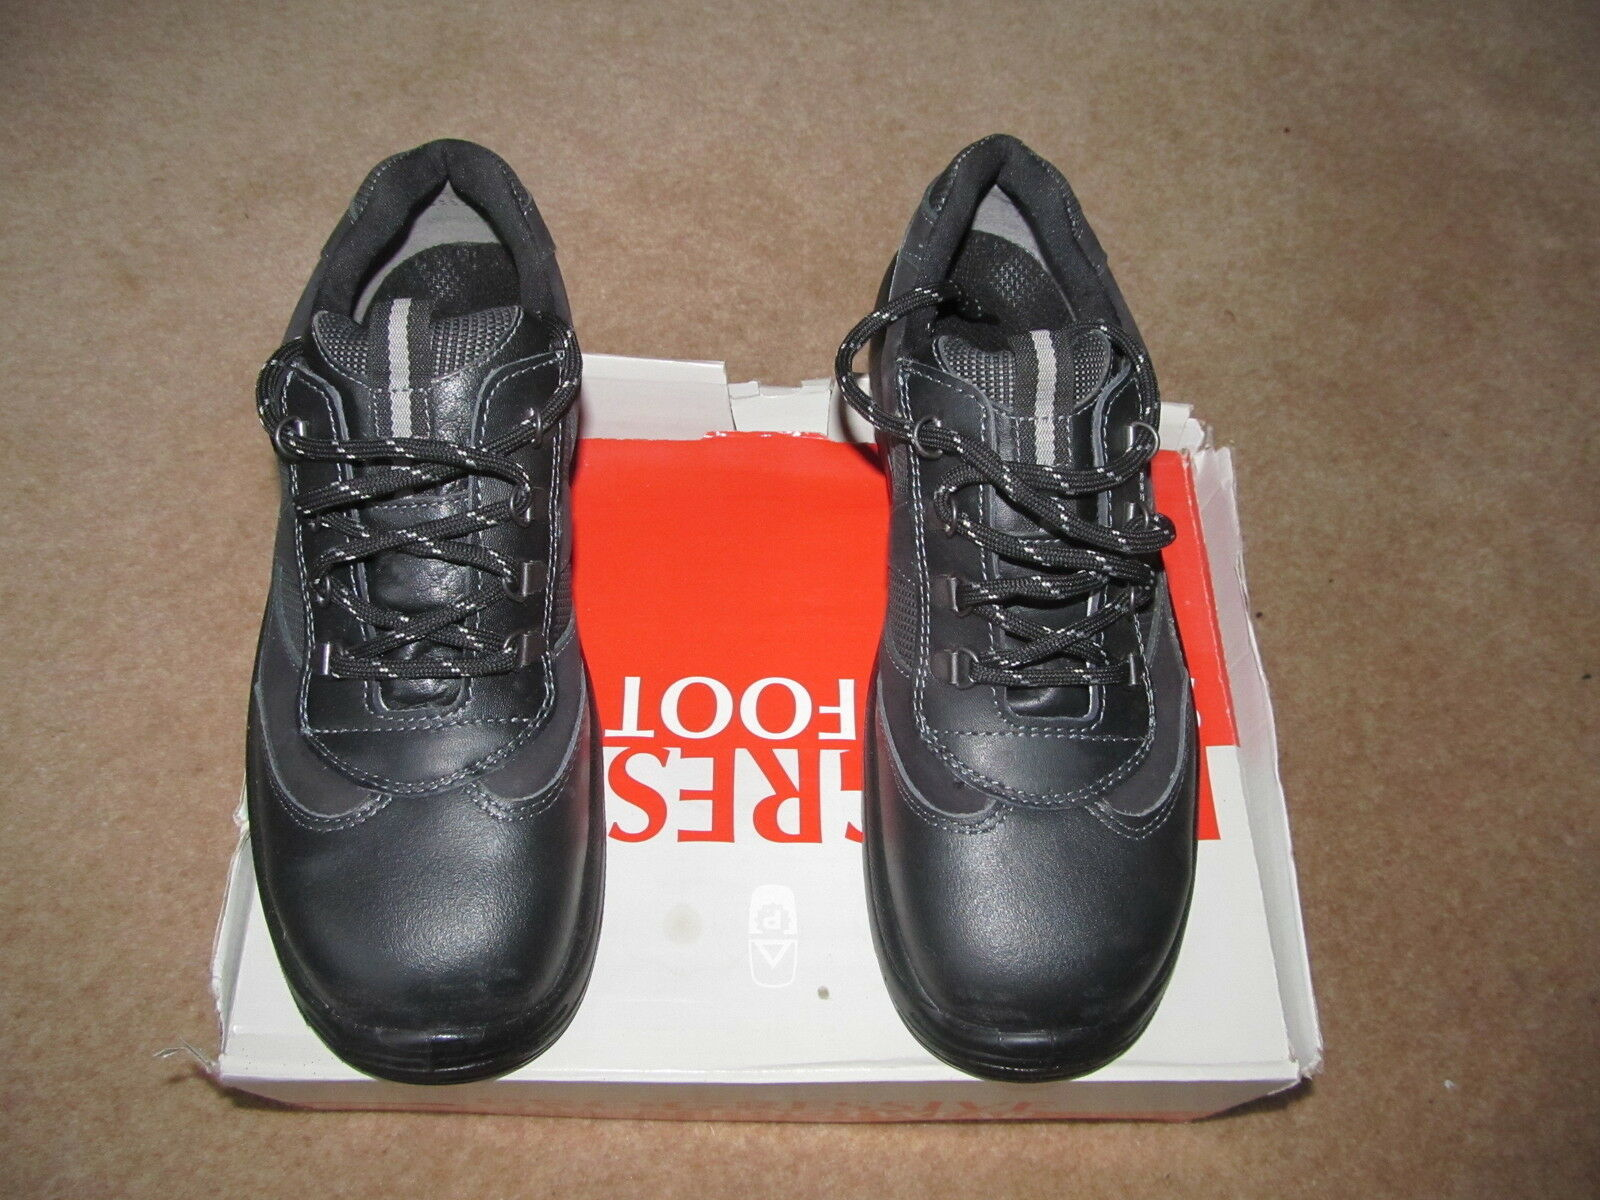 Progressive Safety Trainers Black, / Size 8 - New / Black, Unused 5d8718